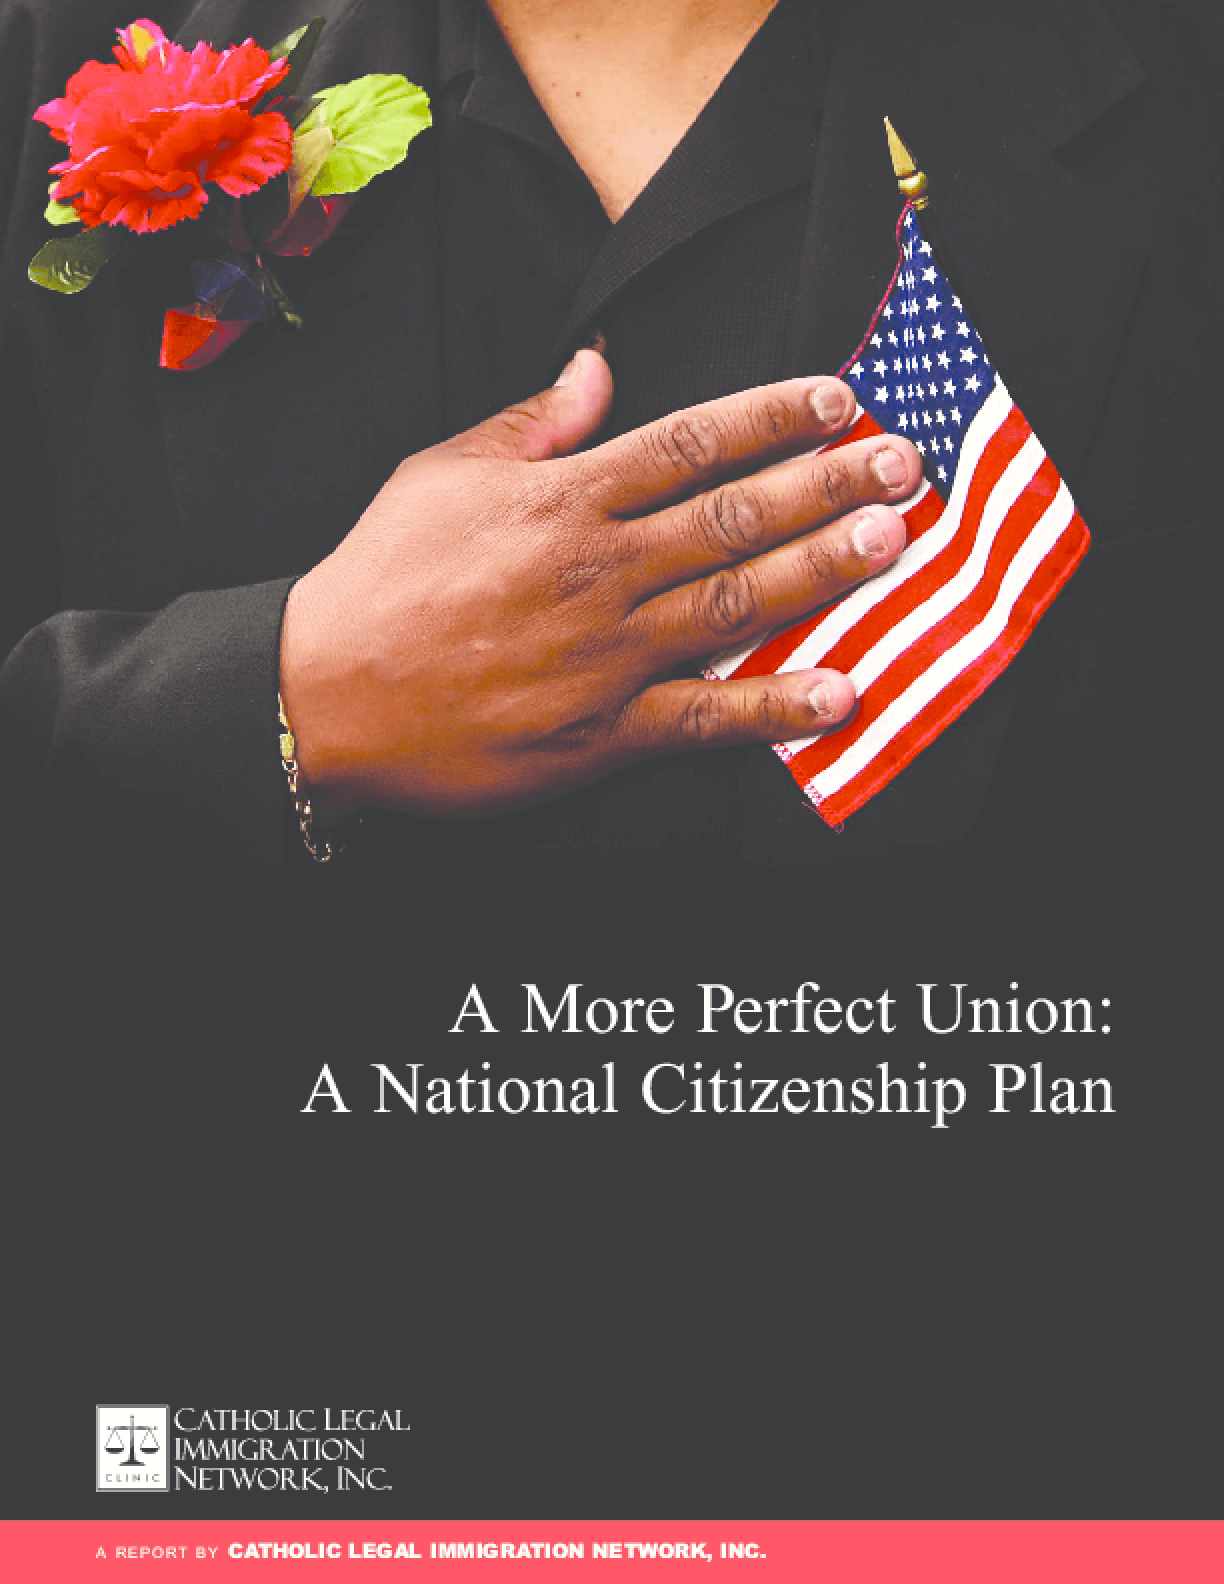 A More Perfect Union: A National Citizenship Plan